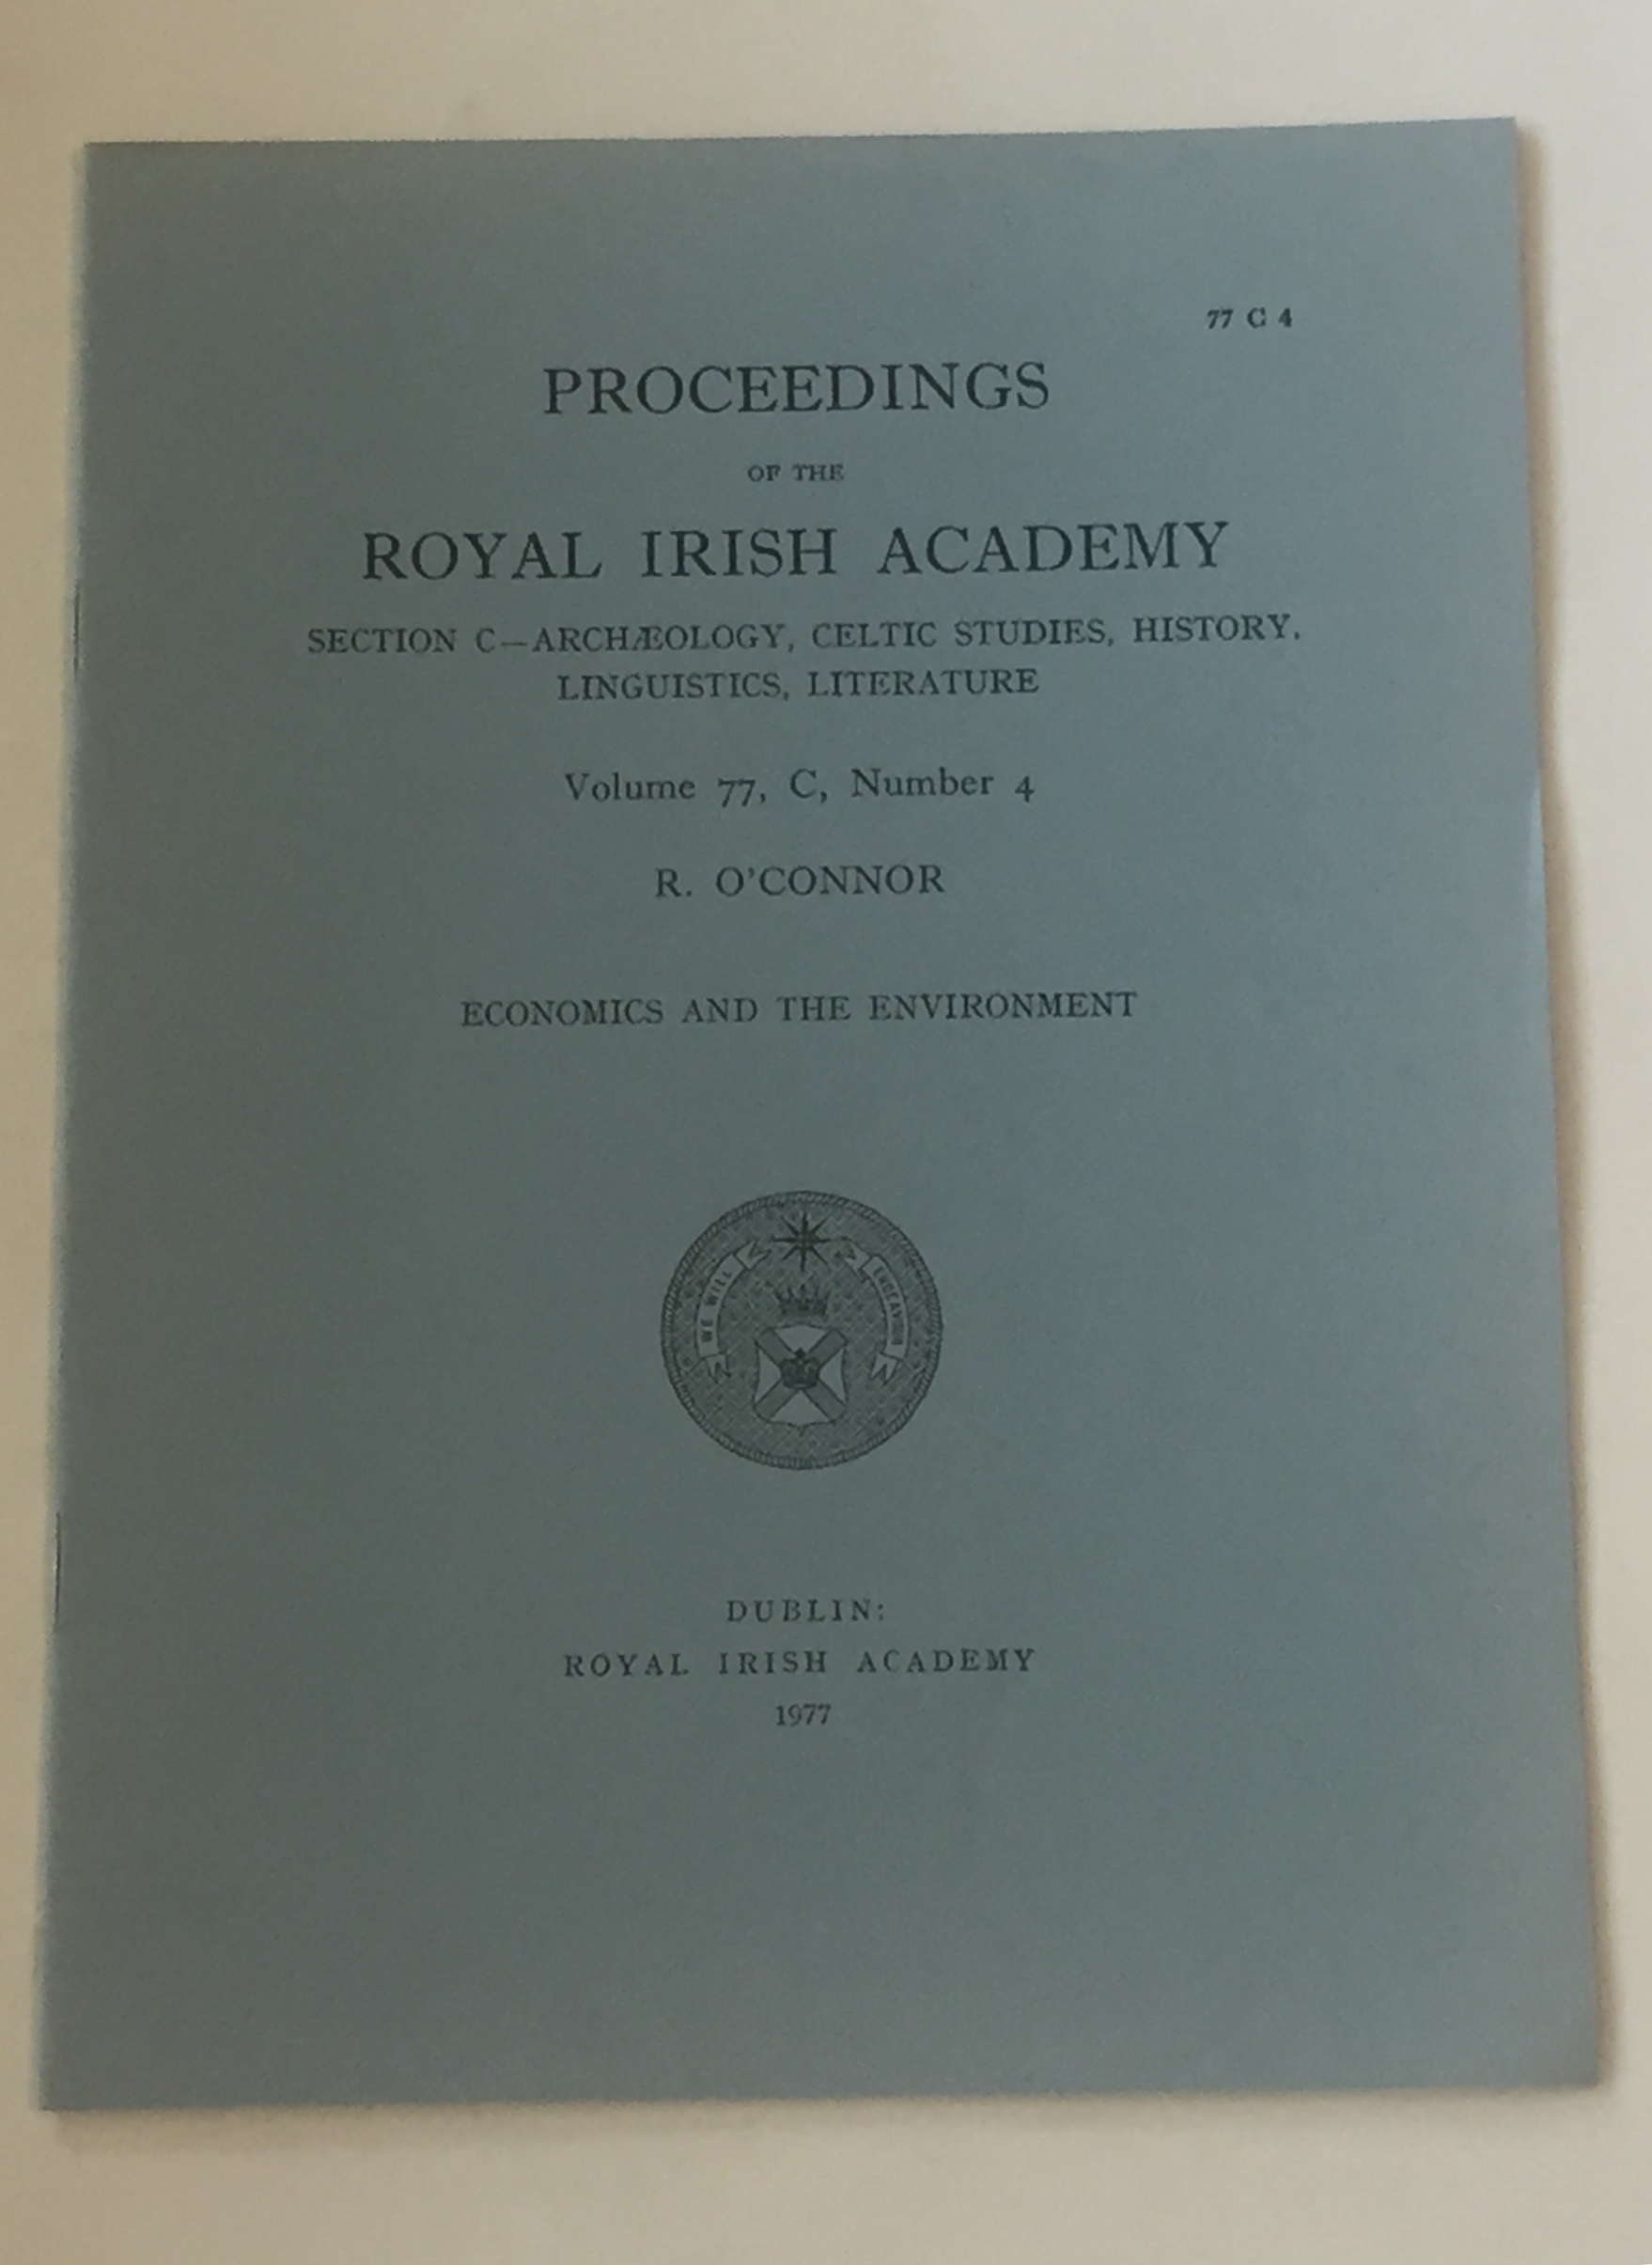 Image for Proceedings of the Royal Irish Academy, Volume 75, Section C, No. 2 :Science, Policy, and Science Policy